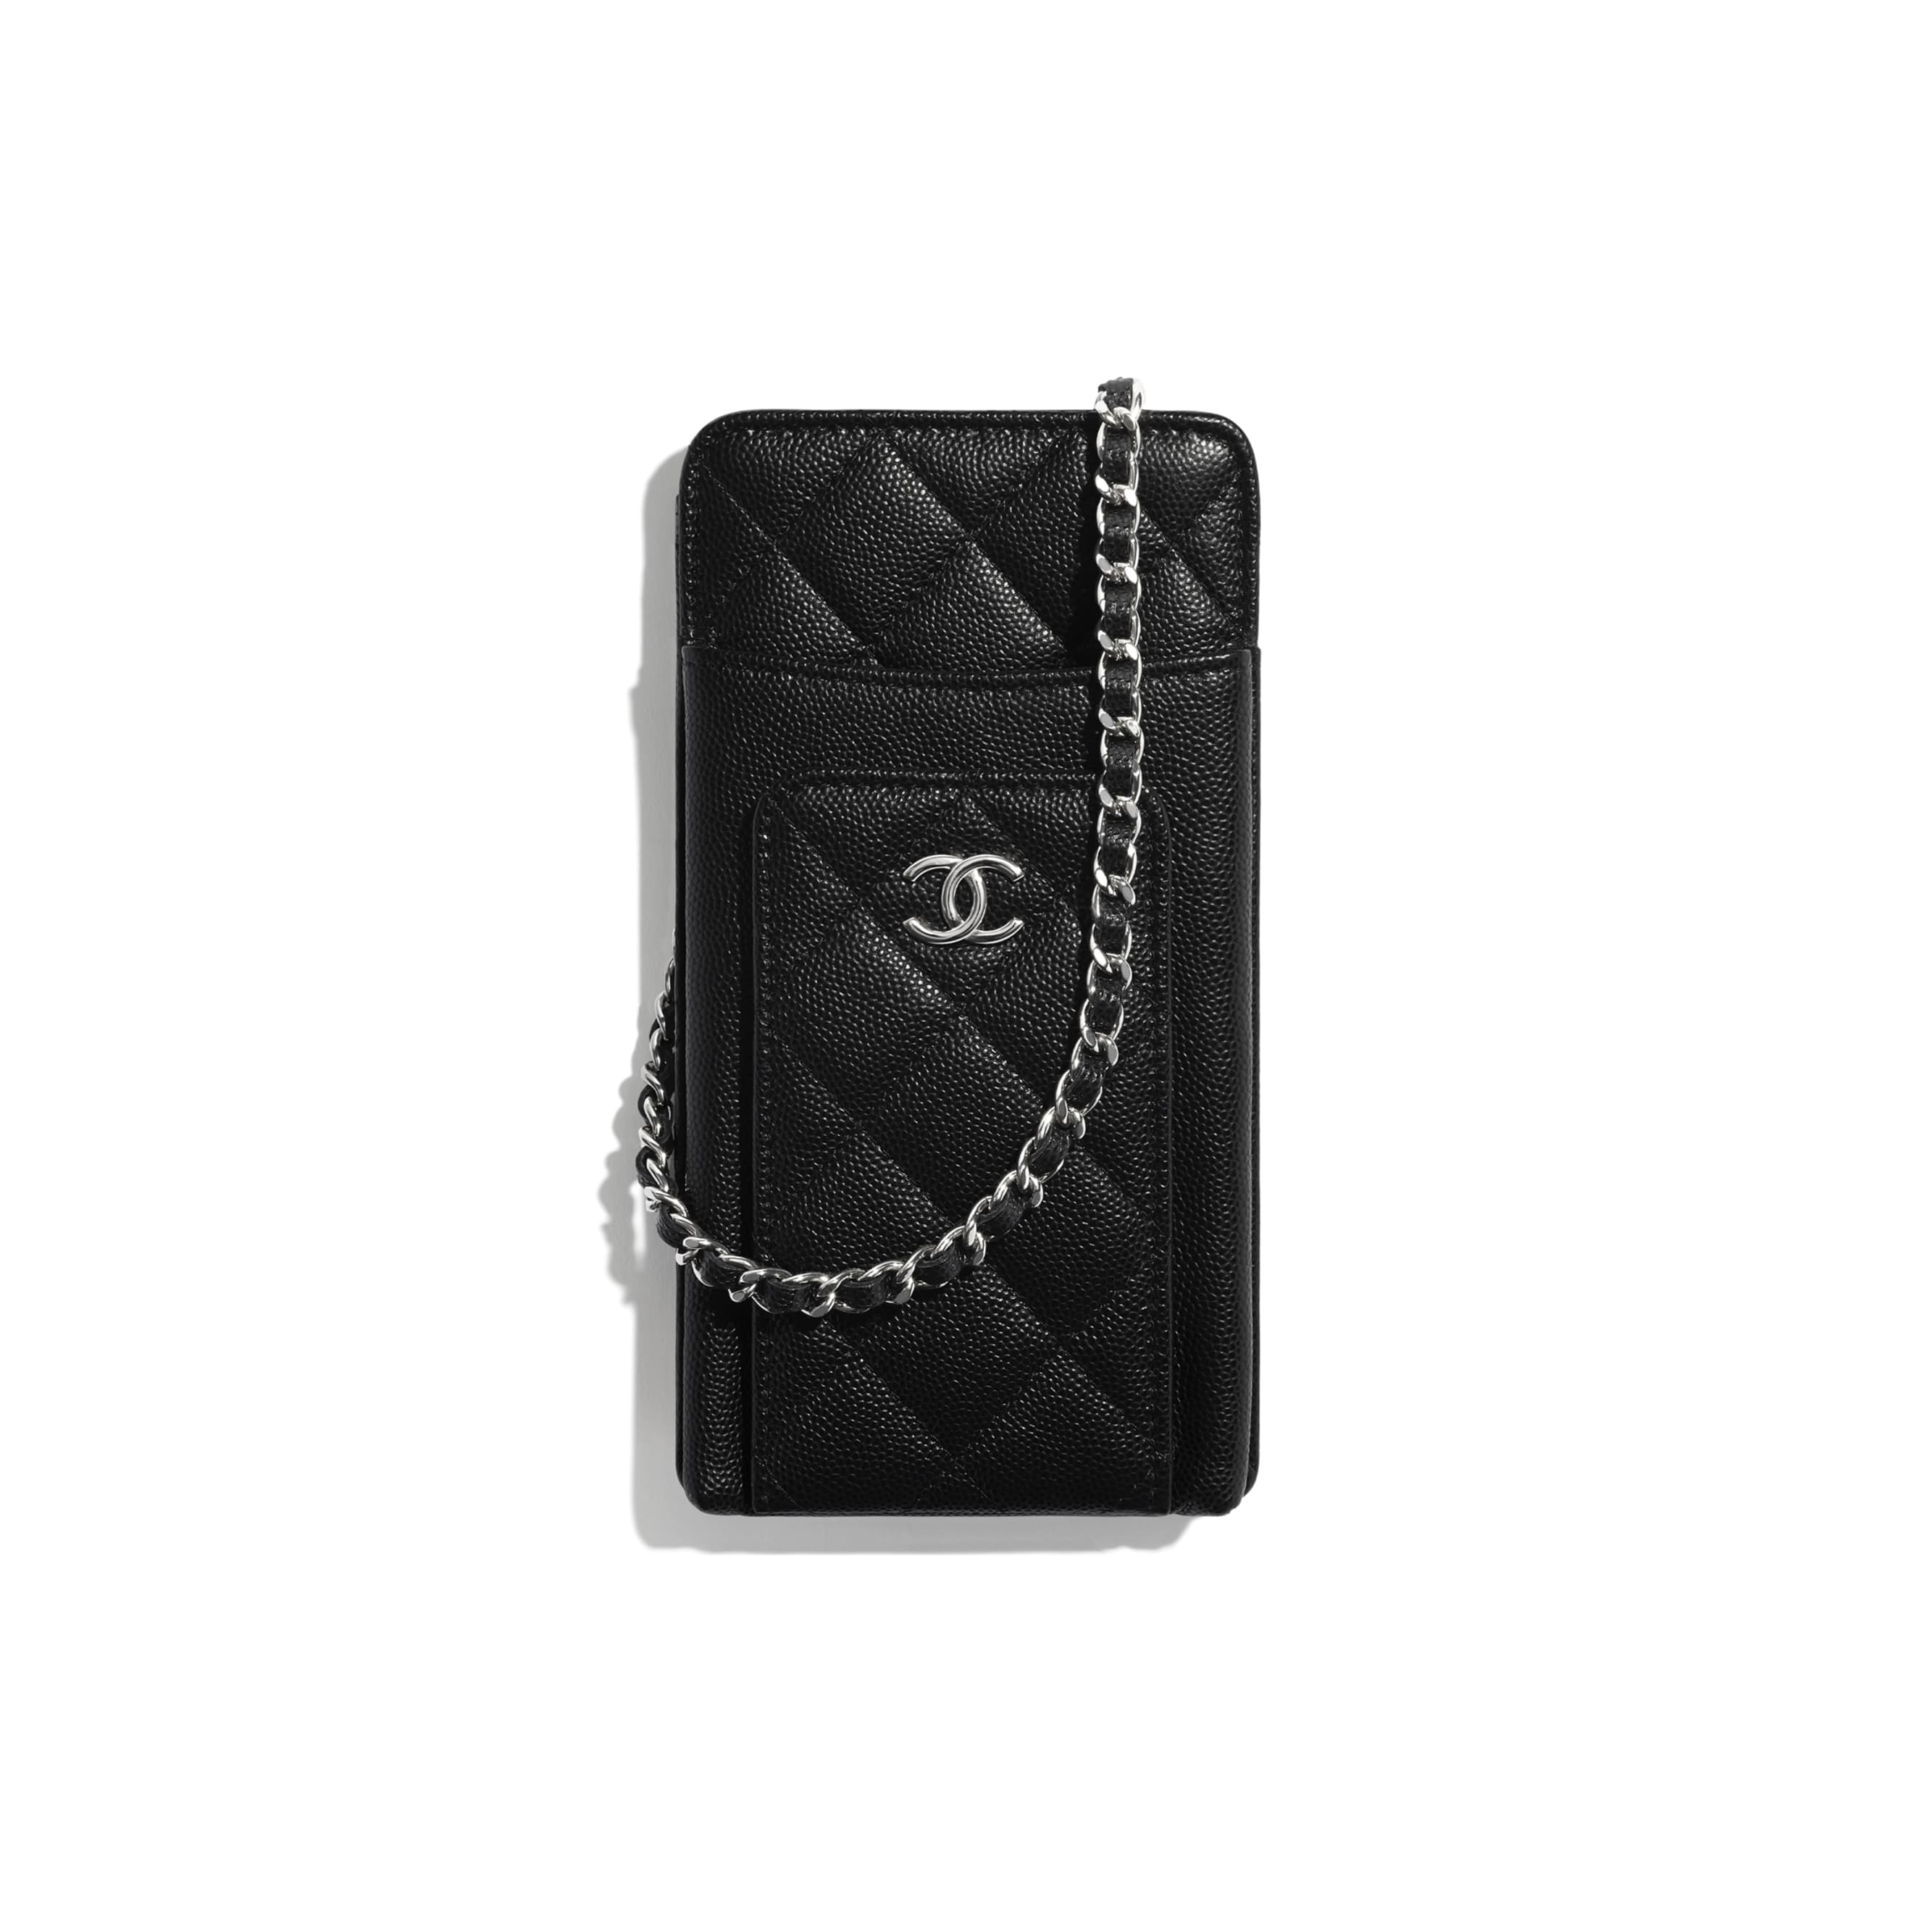 Clutch With Chain - Black, Navy Blue & White - Grained Calfskin, Fabric & Silver-Tone Metal - CHANEL - Default view - see standard sized version